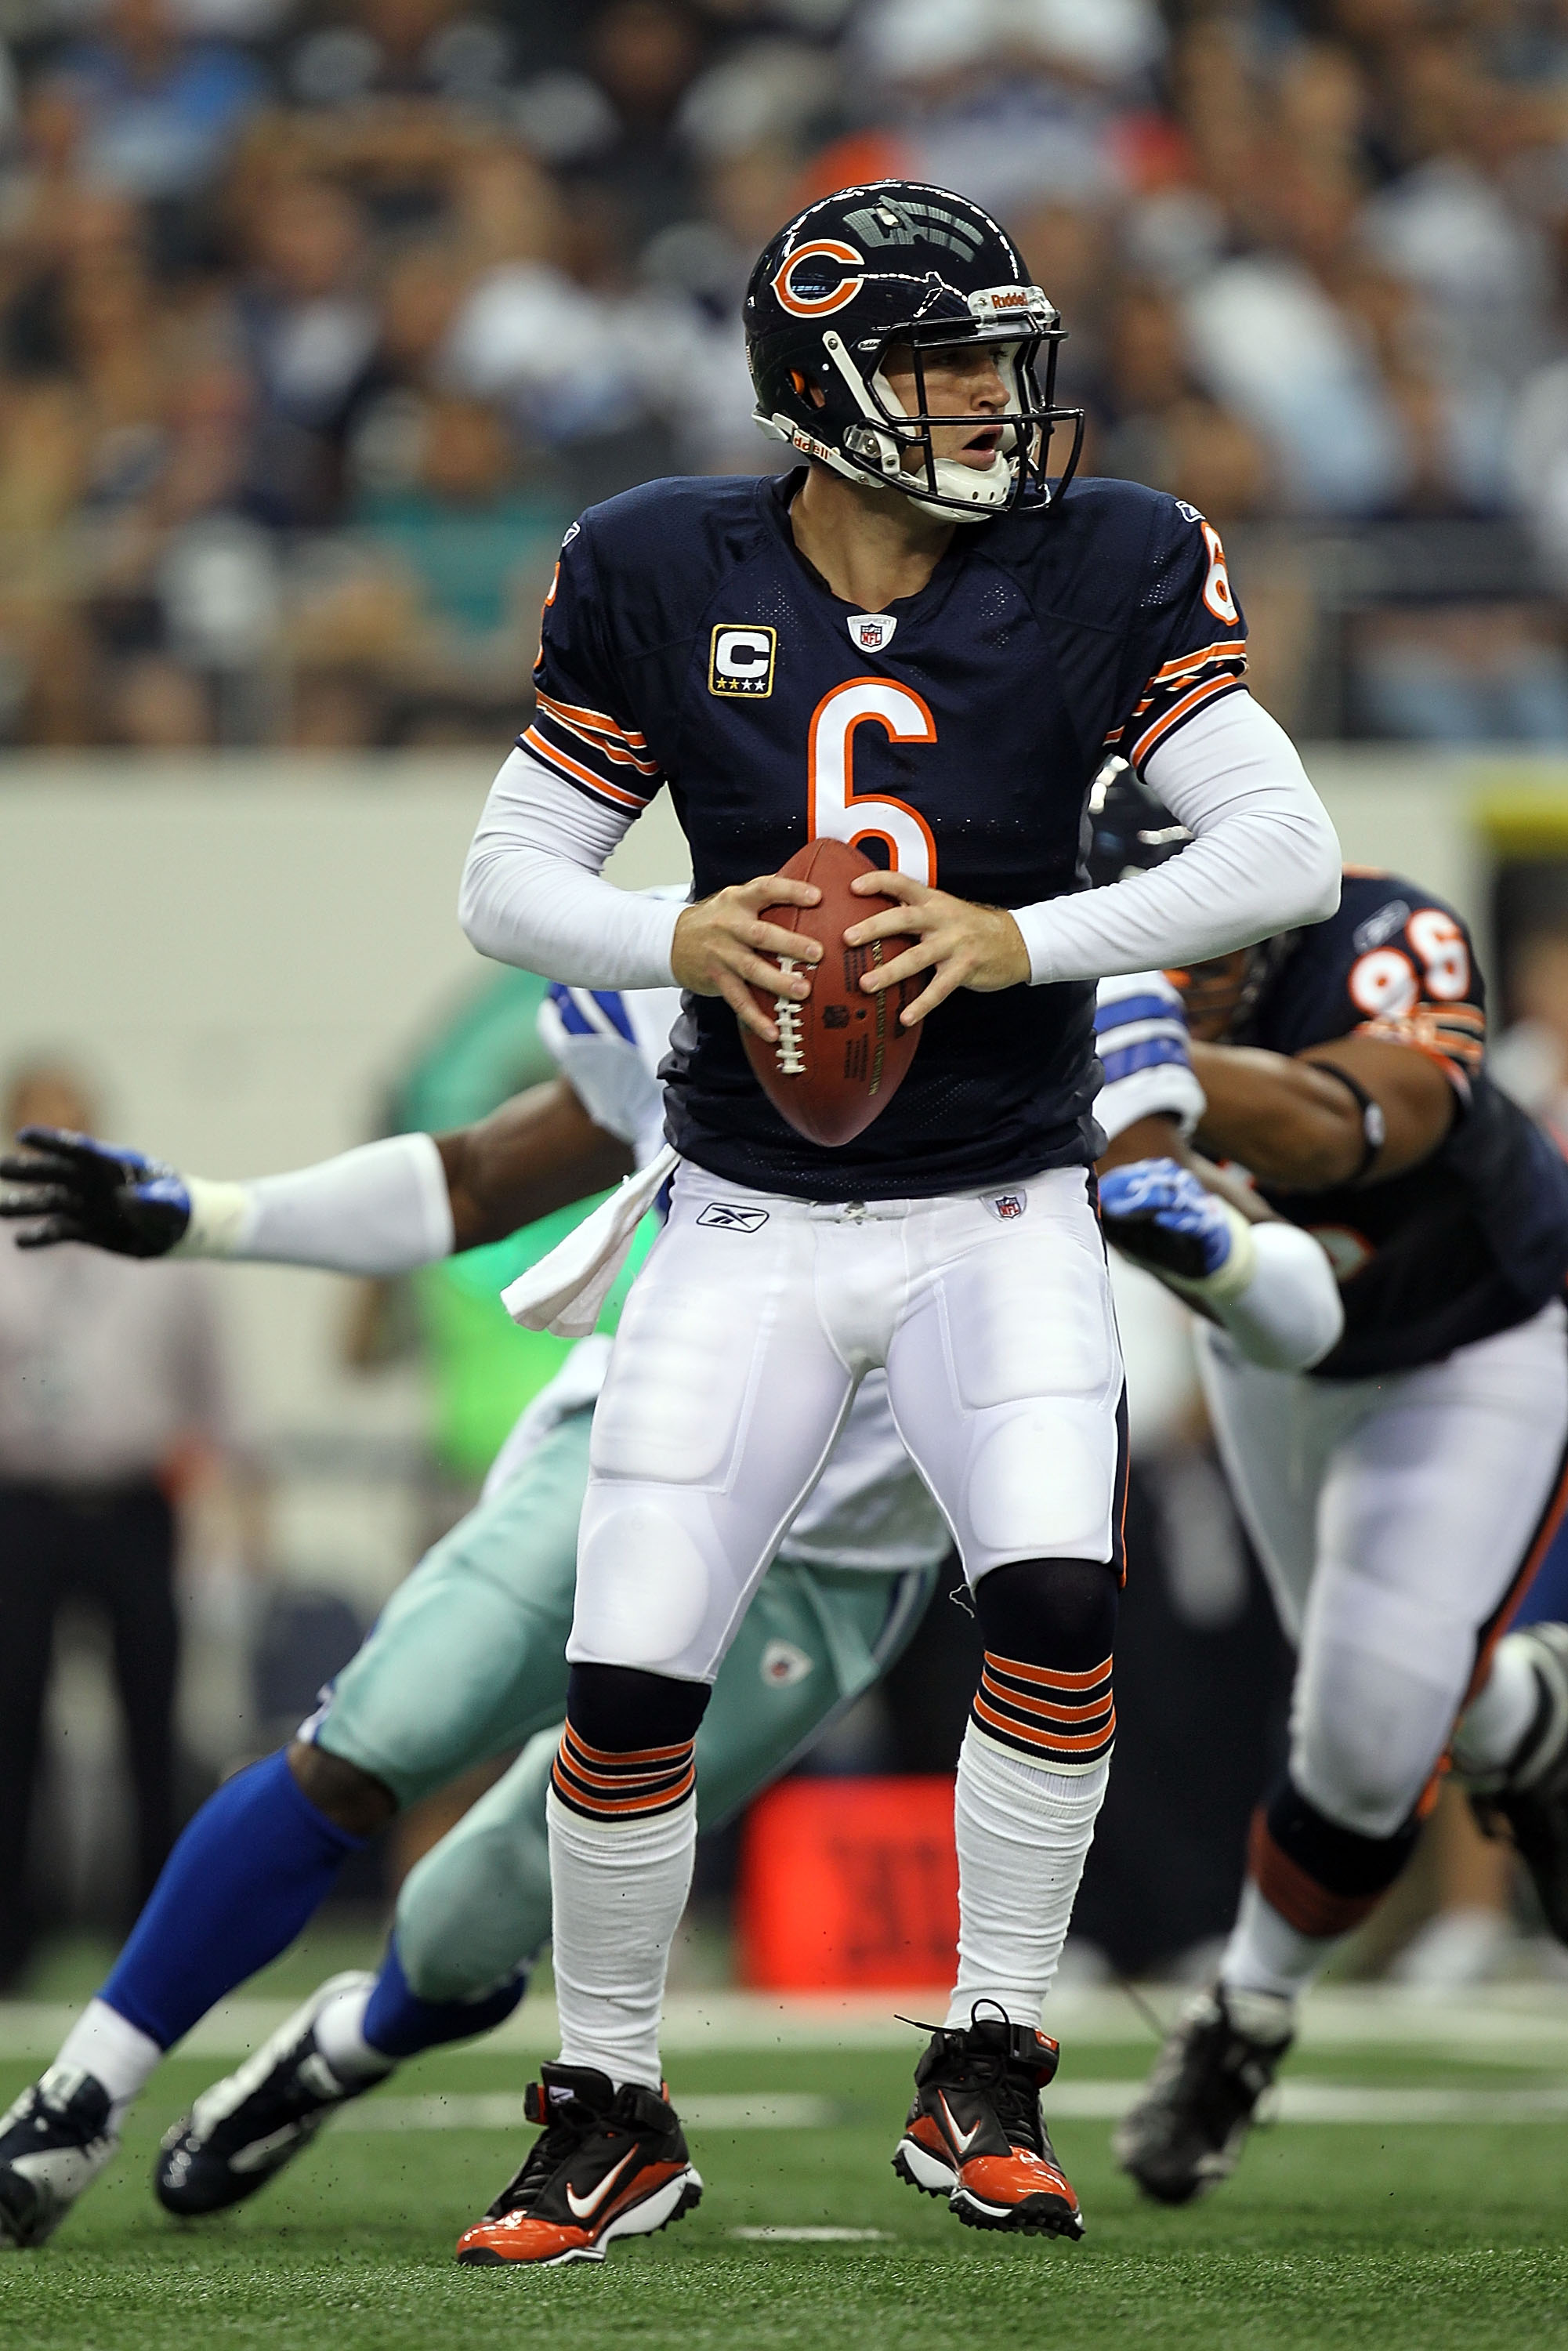 ARLINGTON, TX - SEPTEMBER 19:  Quarterback Jay Cutler #6 of the Chicago Bears at Cowboys Stadium on September 19, 2010 in Arlington, Texas.  (Photo by Ronald Martinez/Getty Images)